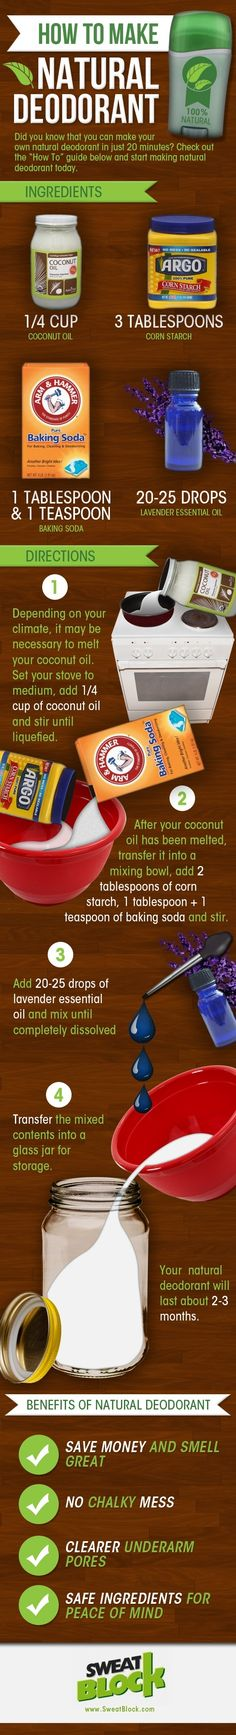 How To Make Natural Deodorant [infographic] by batjas88